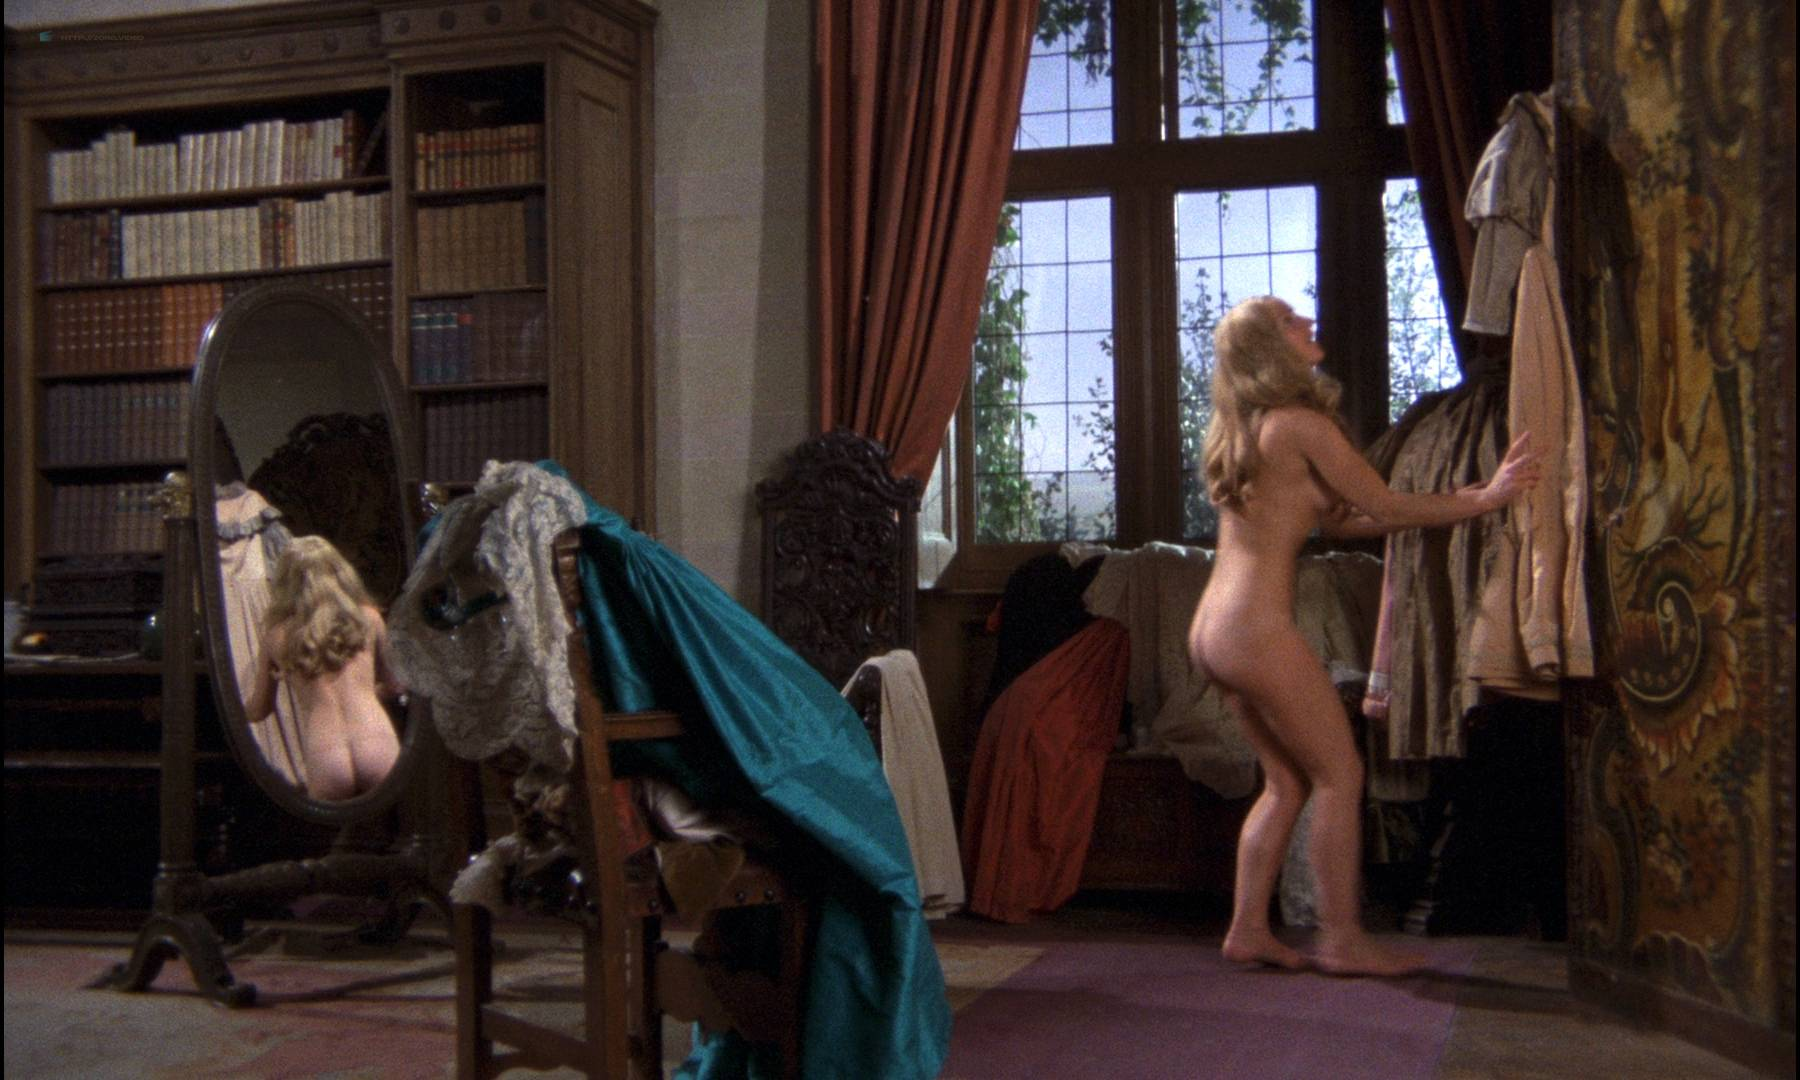 Gillian Hills nude topless Virginia Wetherell nude full frontal - Demons of the Mind (UK-1972) HD 1080p BluRay (6)